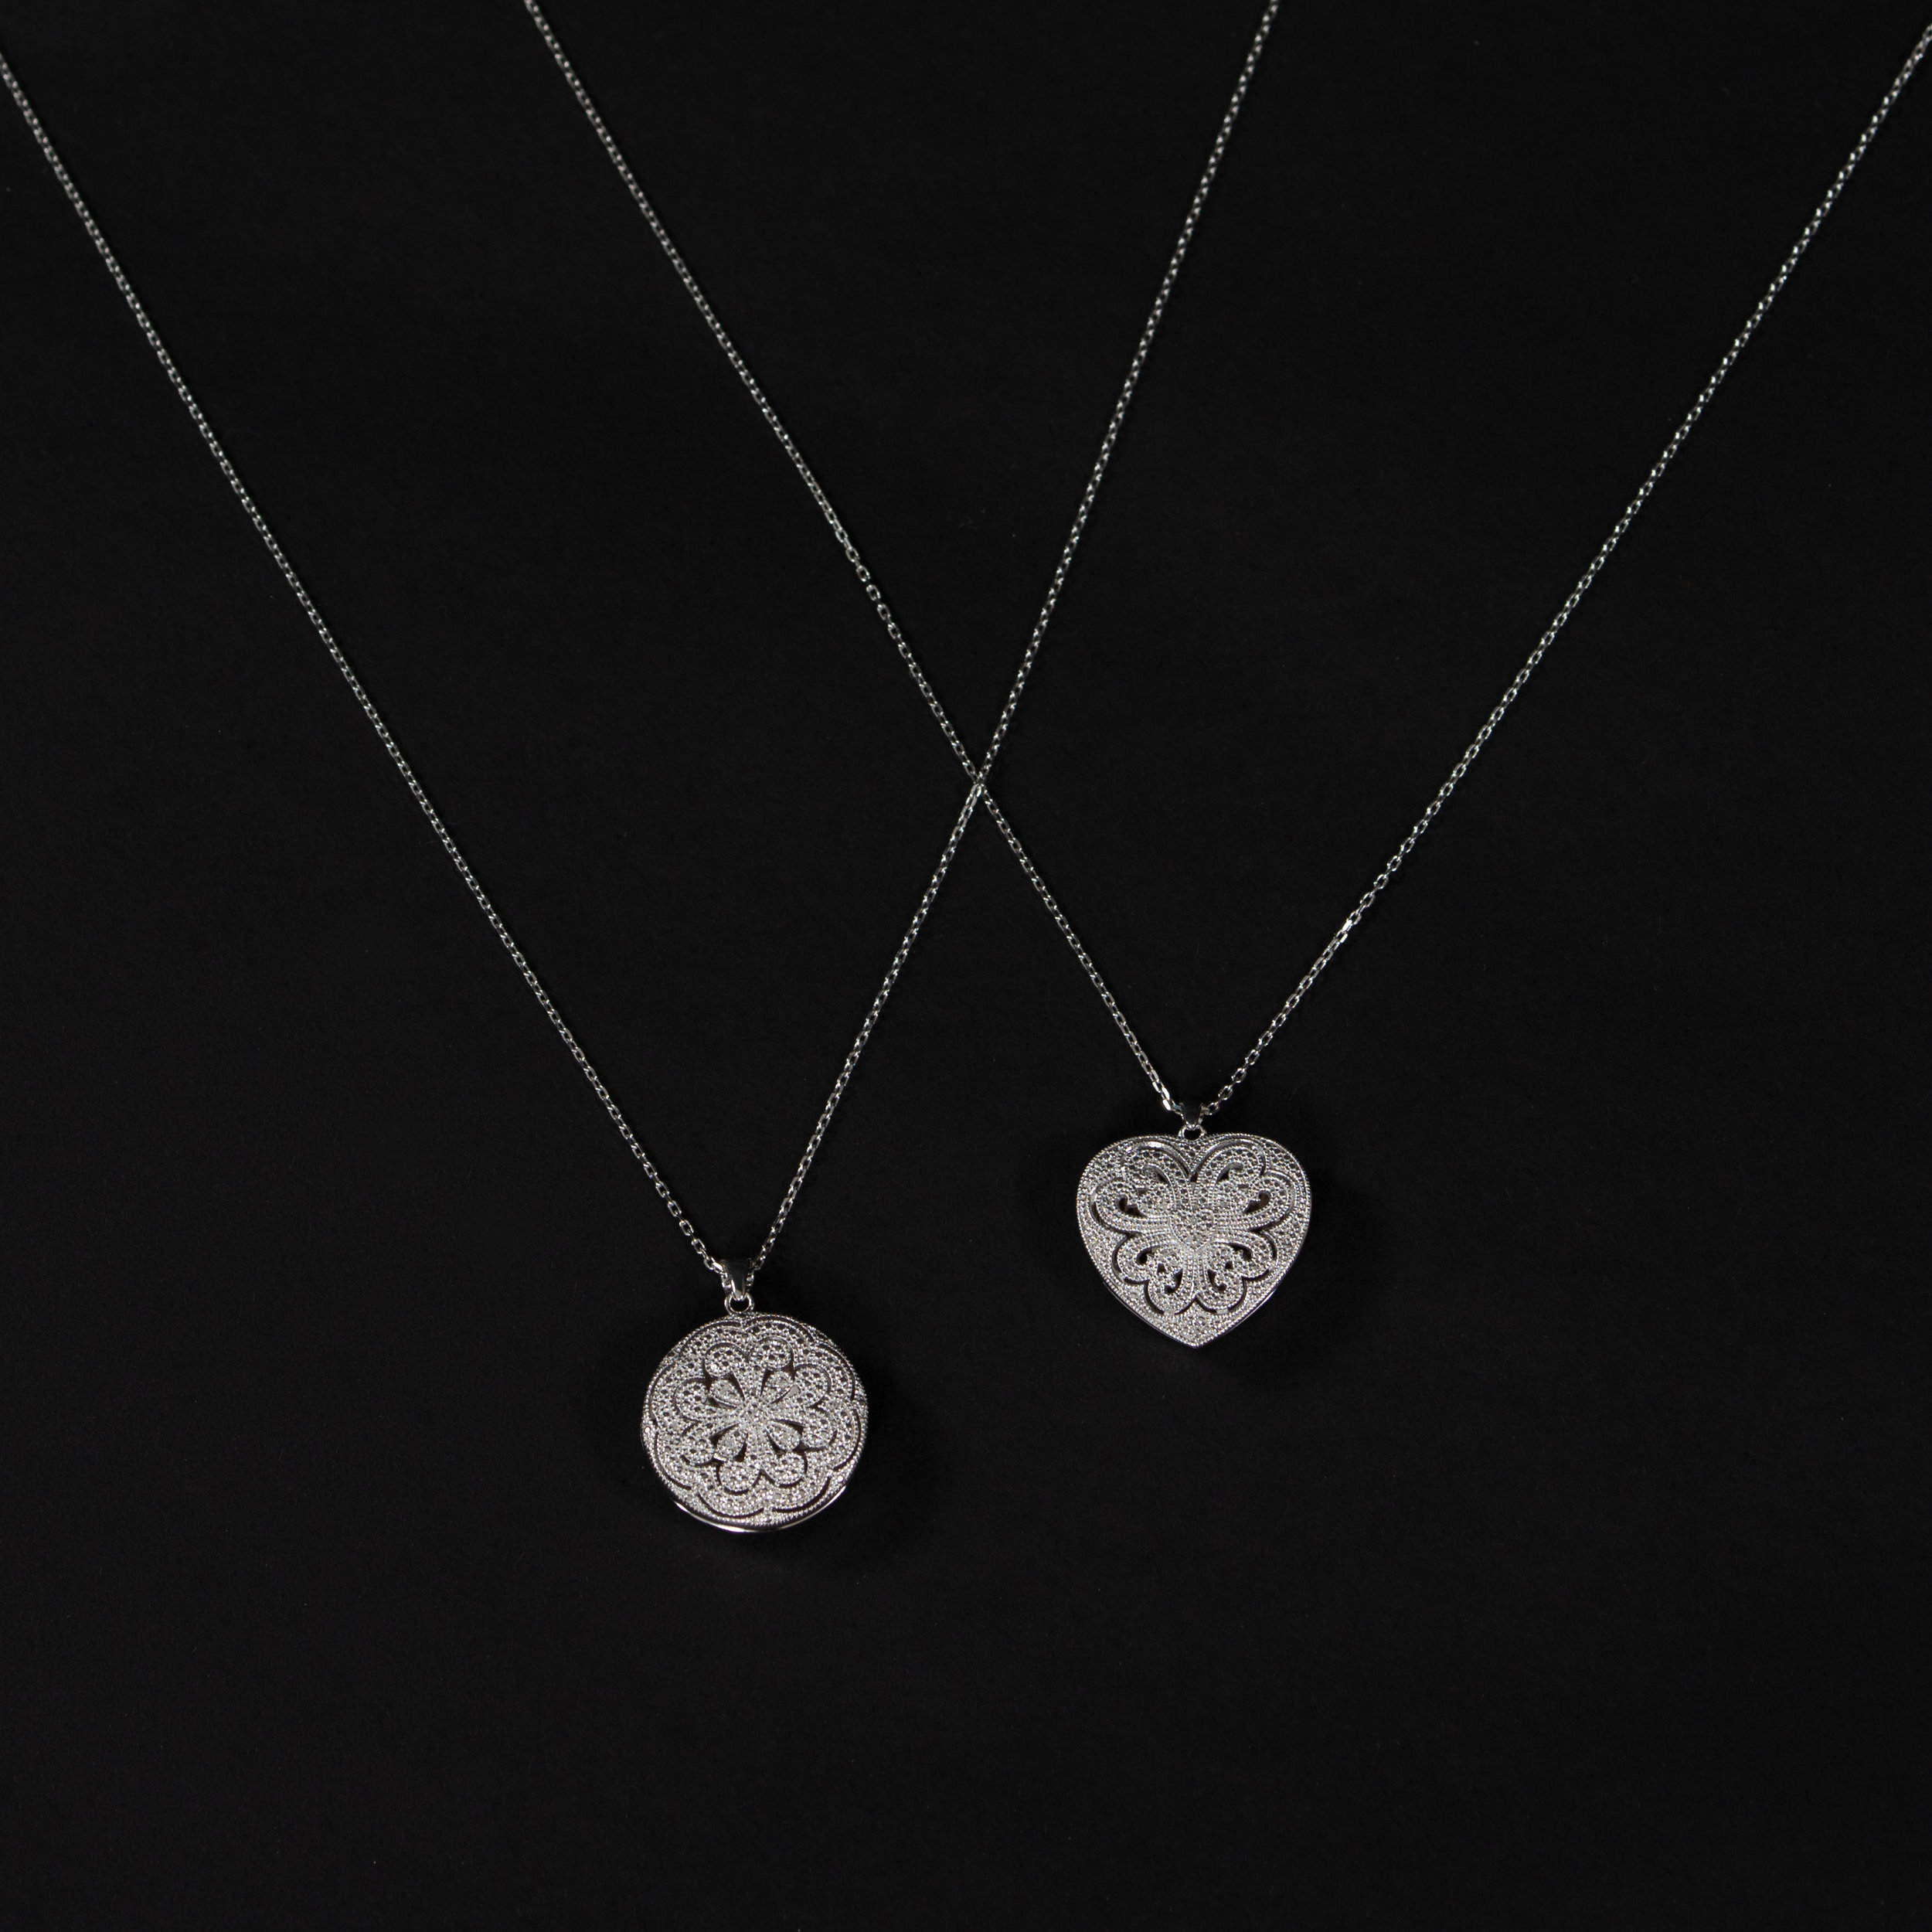 100 special june19 - Heart or Circle Shaped Sterling Silver Locket with intricate cutout.jpg